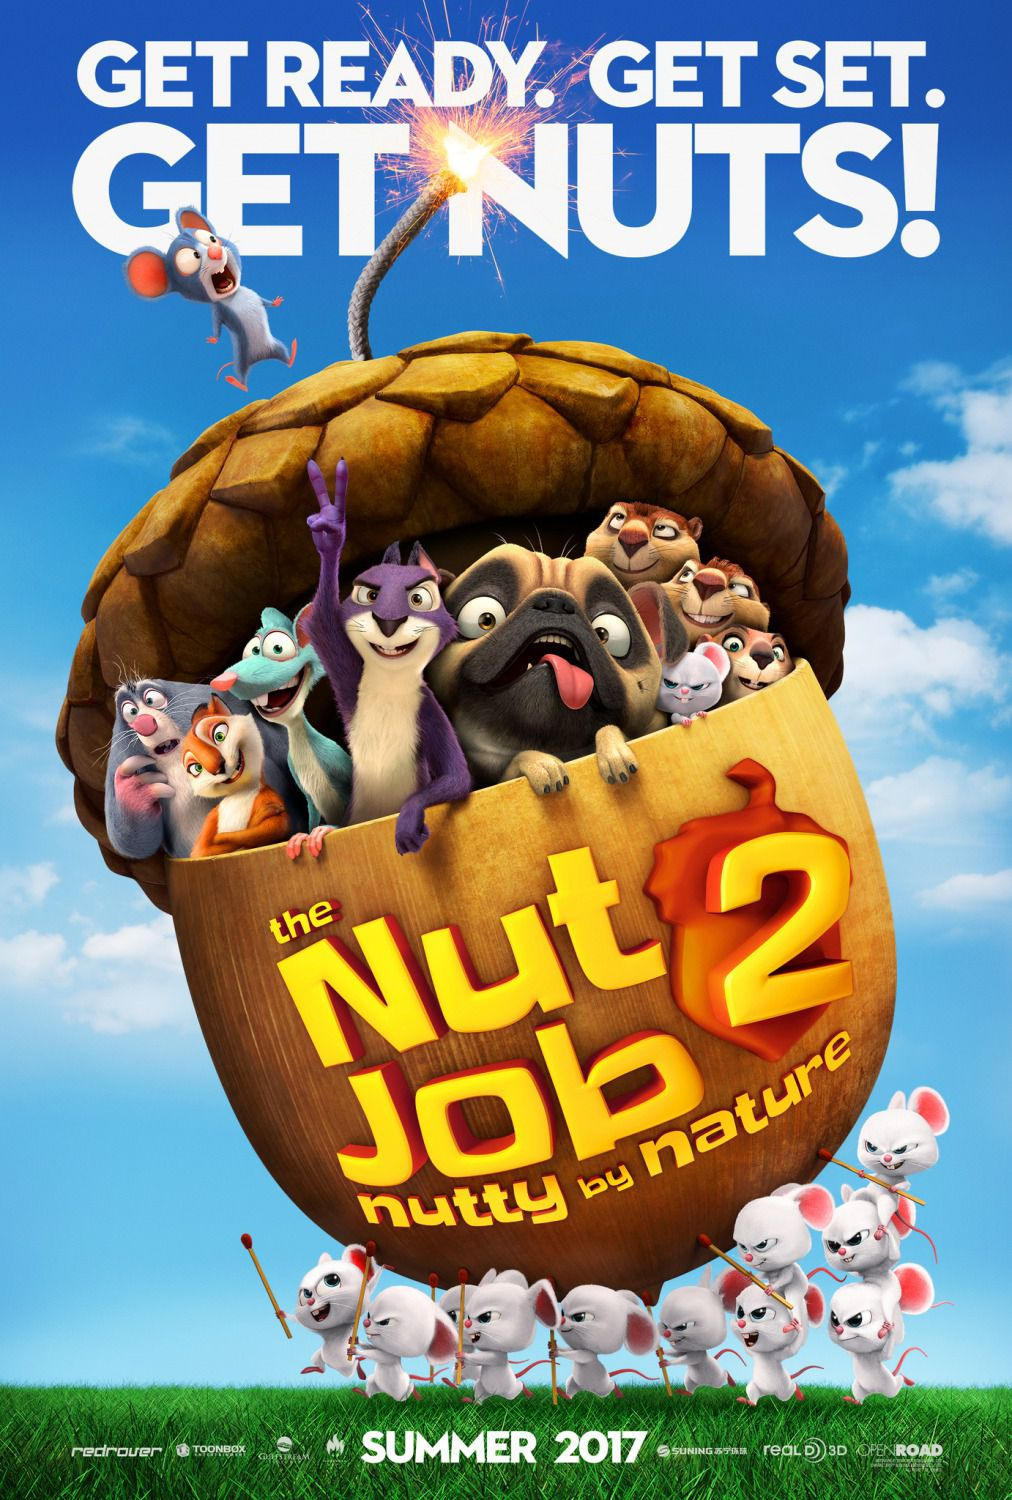 Film - The Nut Job 2 - Operazione Nocciolina 2 - Nutty by Nature - poster